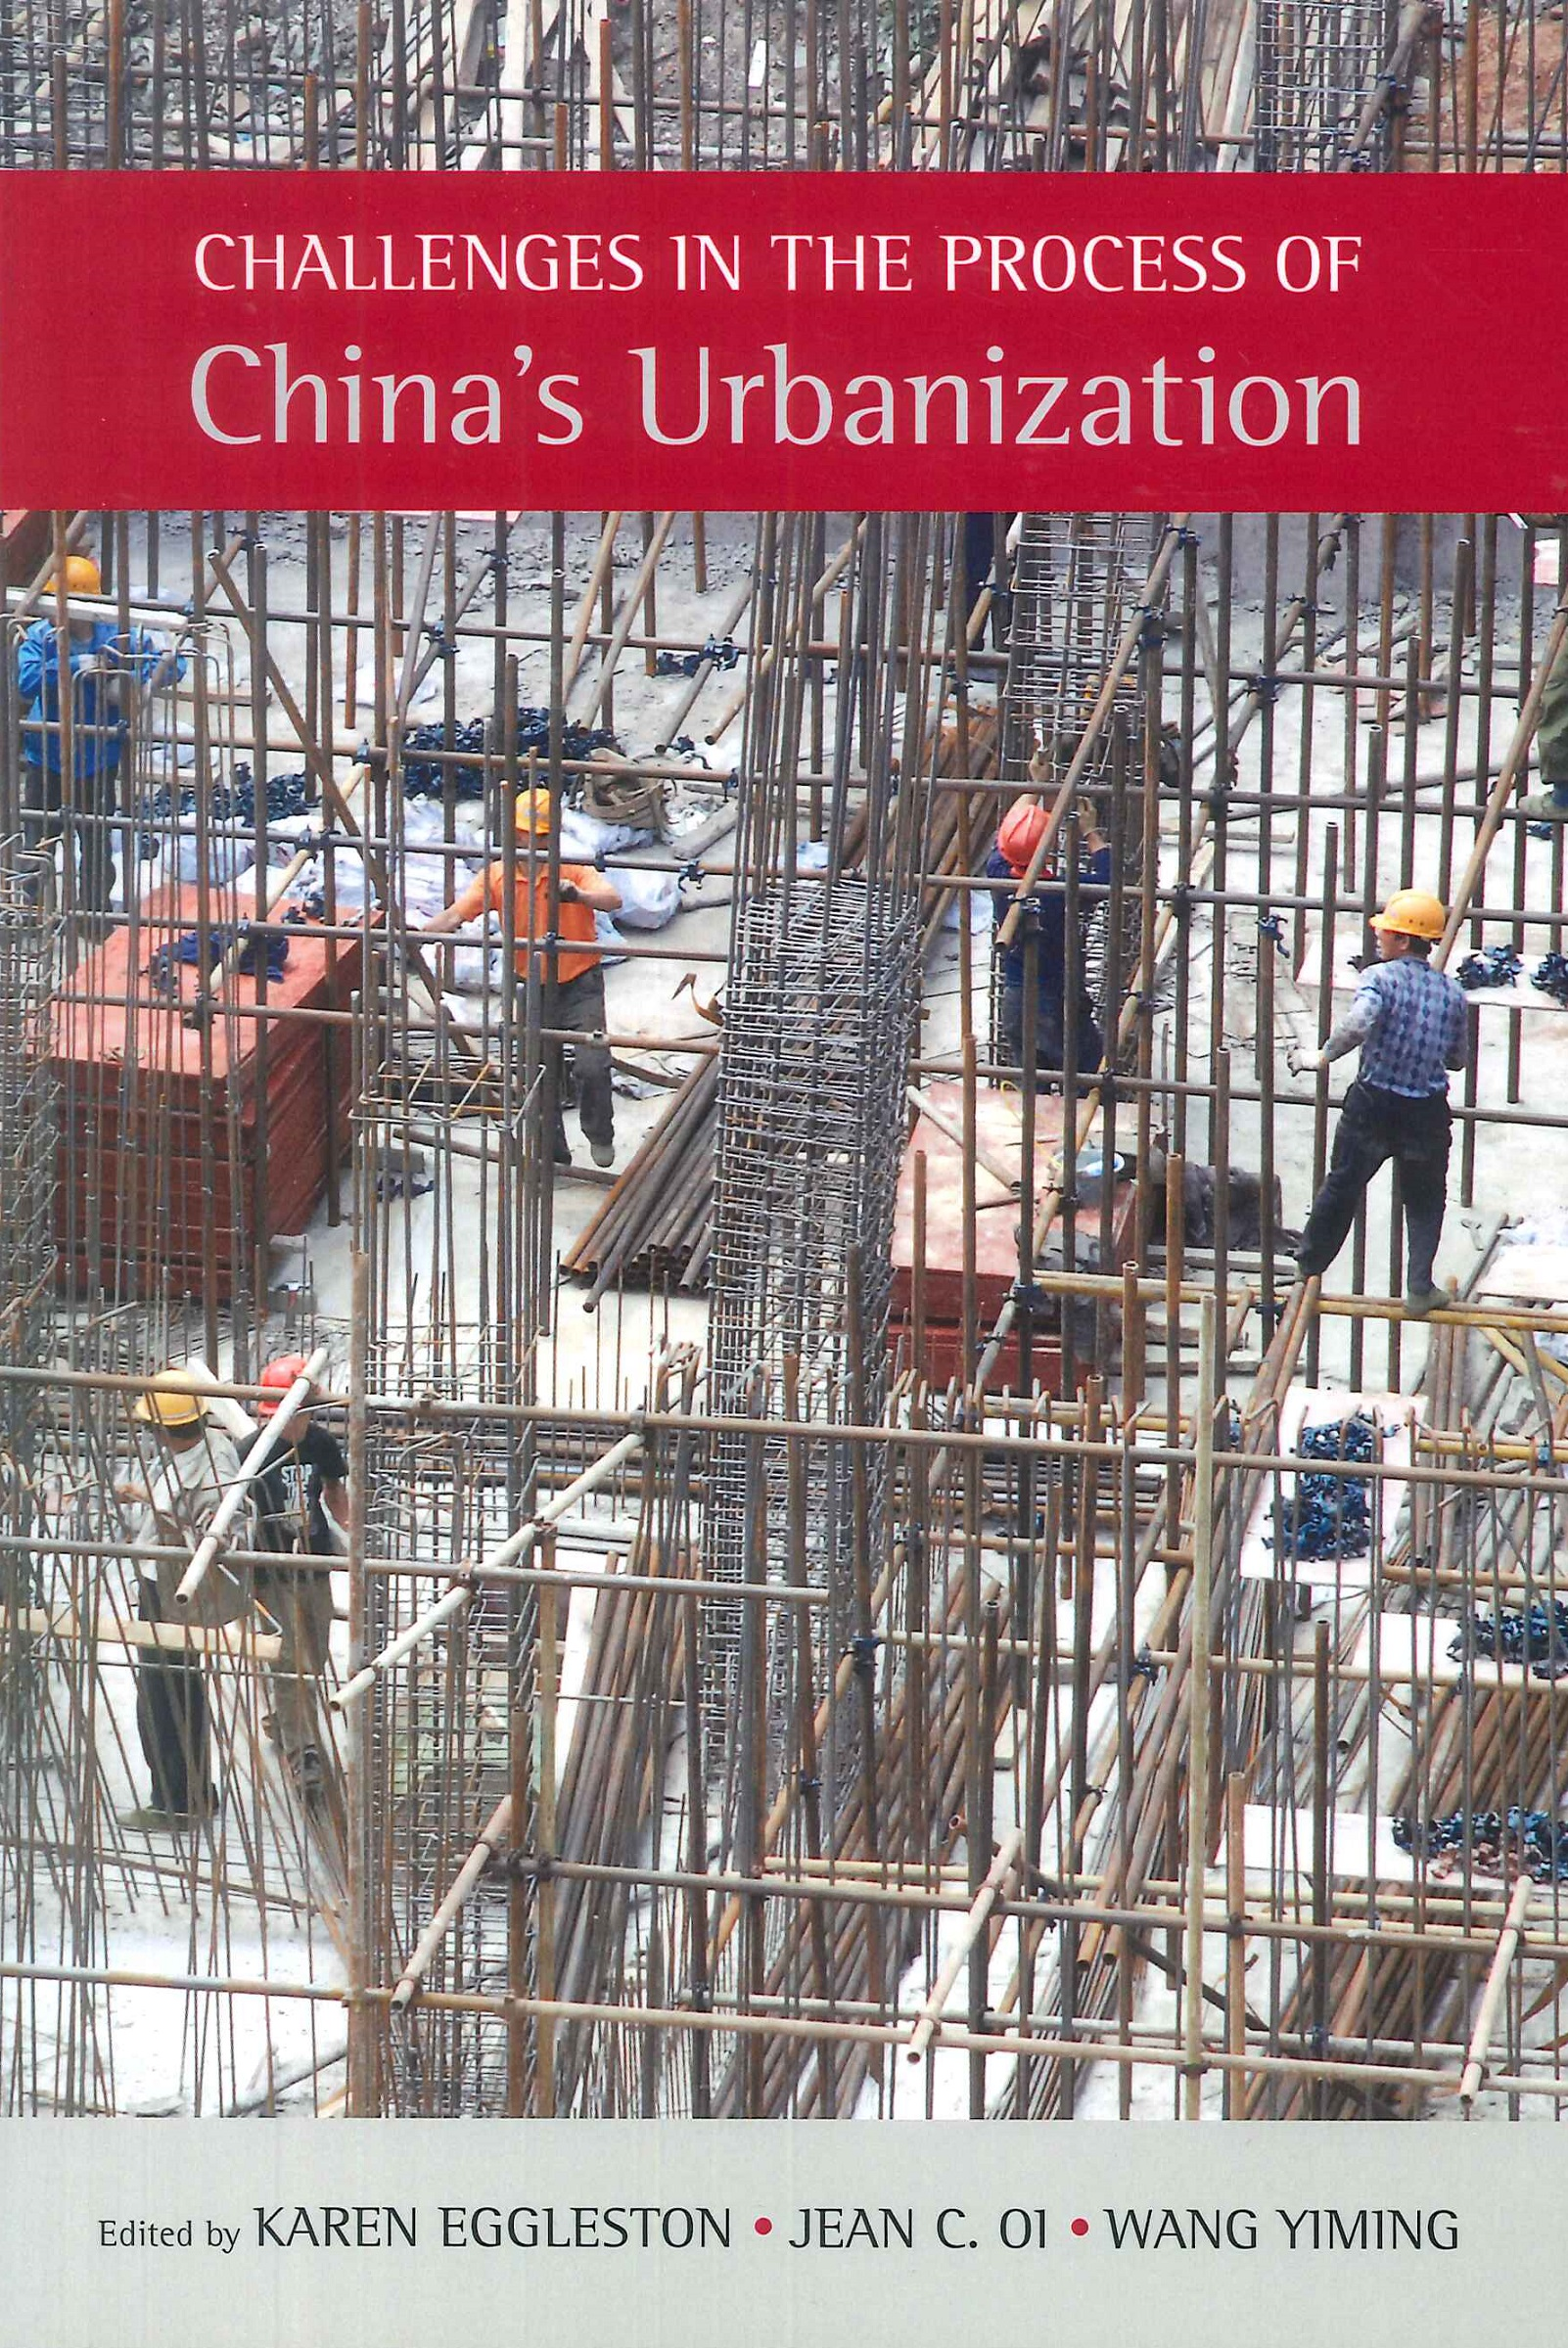 Challenges in the process of China